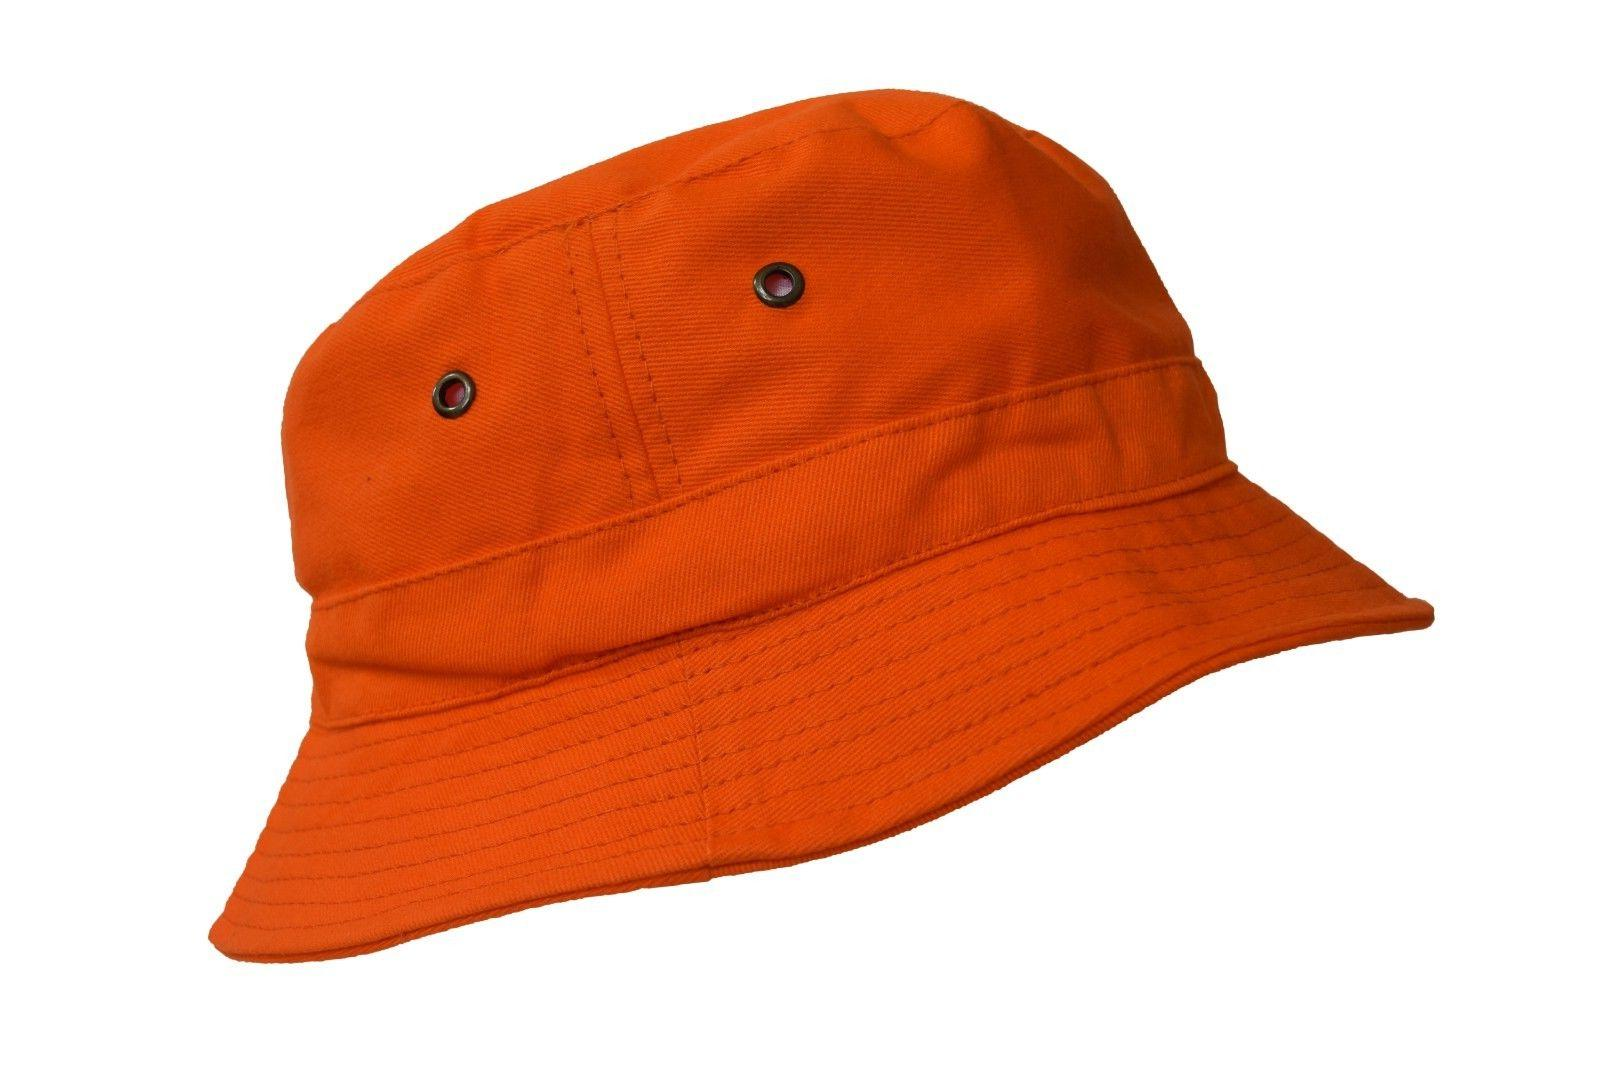 Bucket Hat 2 INCH Boonie Cap Cotton Fishing Hunting Safari S